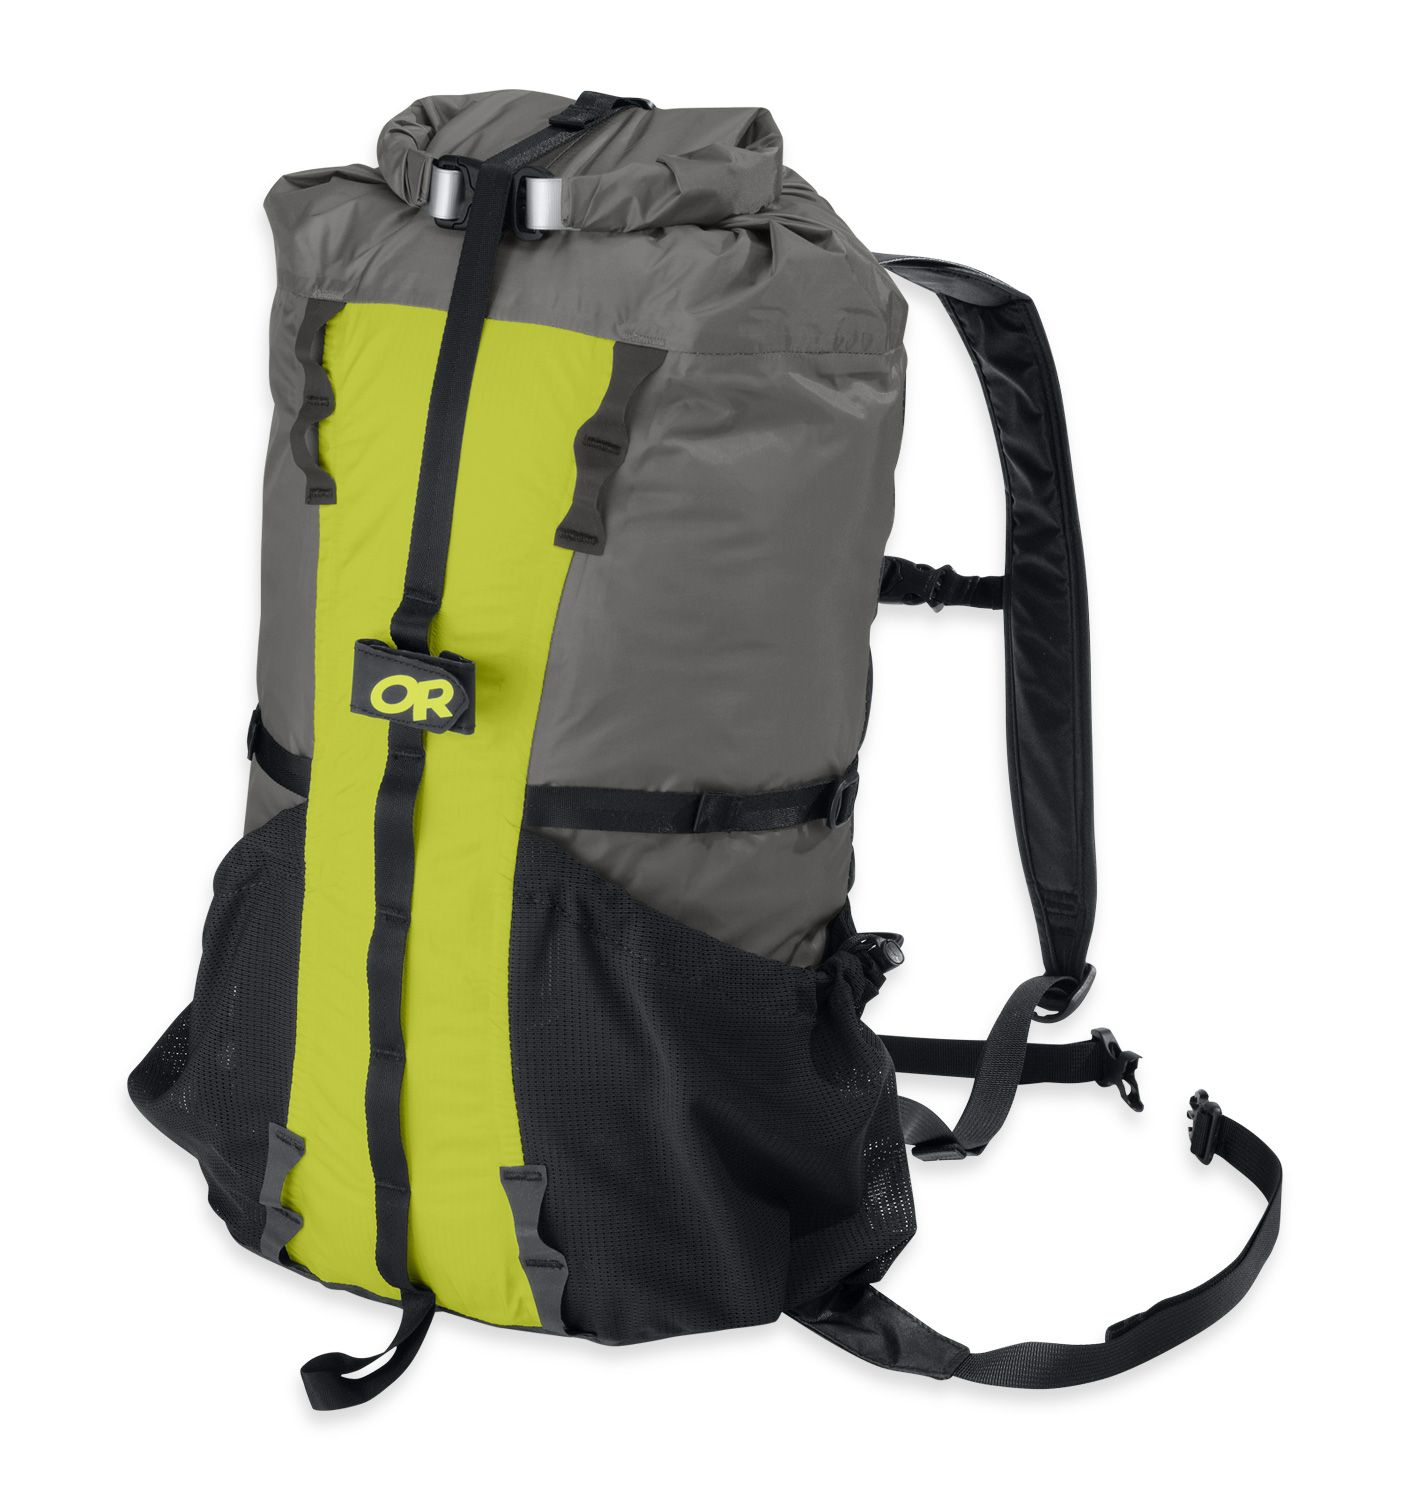 Outdoor Research Drycomp Summit Sack -  ultralight, waterproof, airpurge strip for maximum compression. Sewn and taped seams, and reinforced fabric on the bottom and back area. Mesh side pockets, and gear loops secure. Compression stamps, and padded shoulder straps.